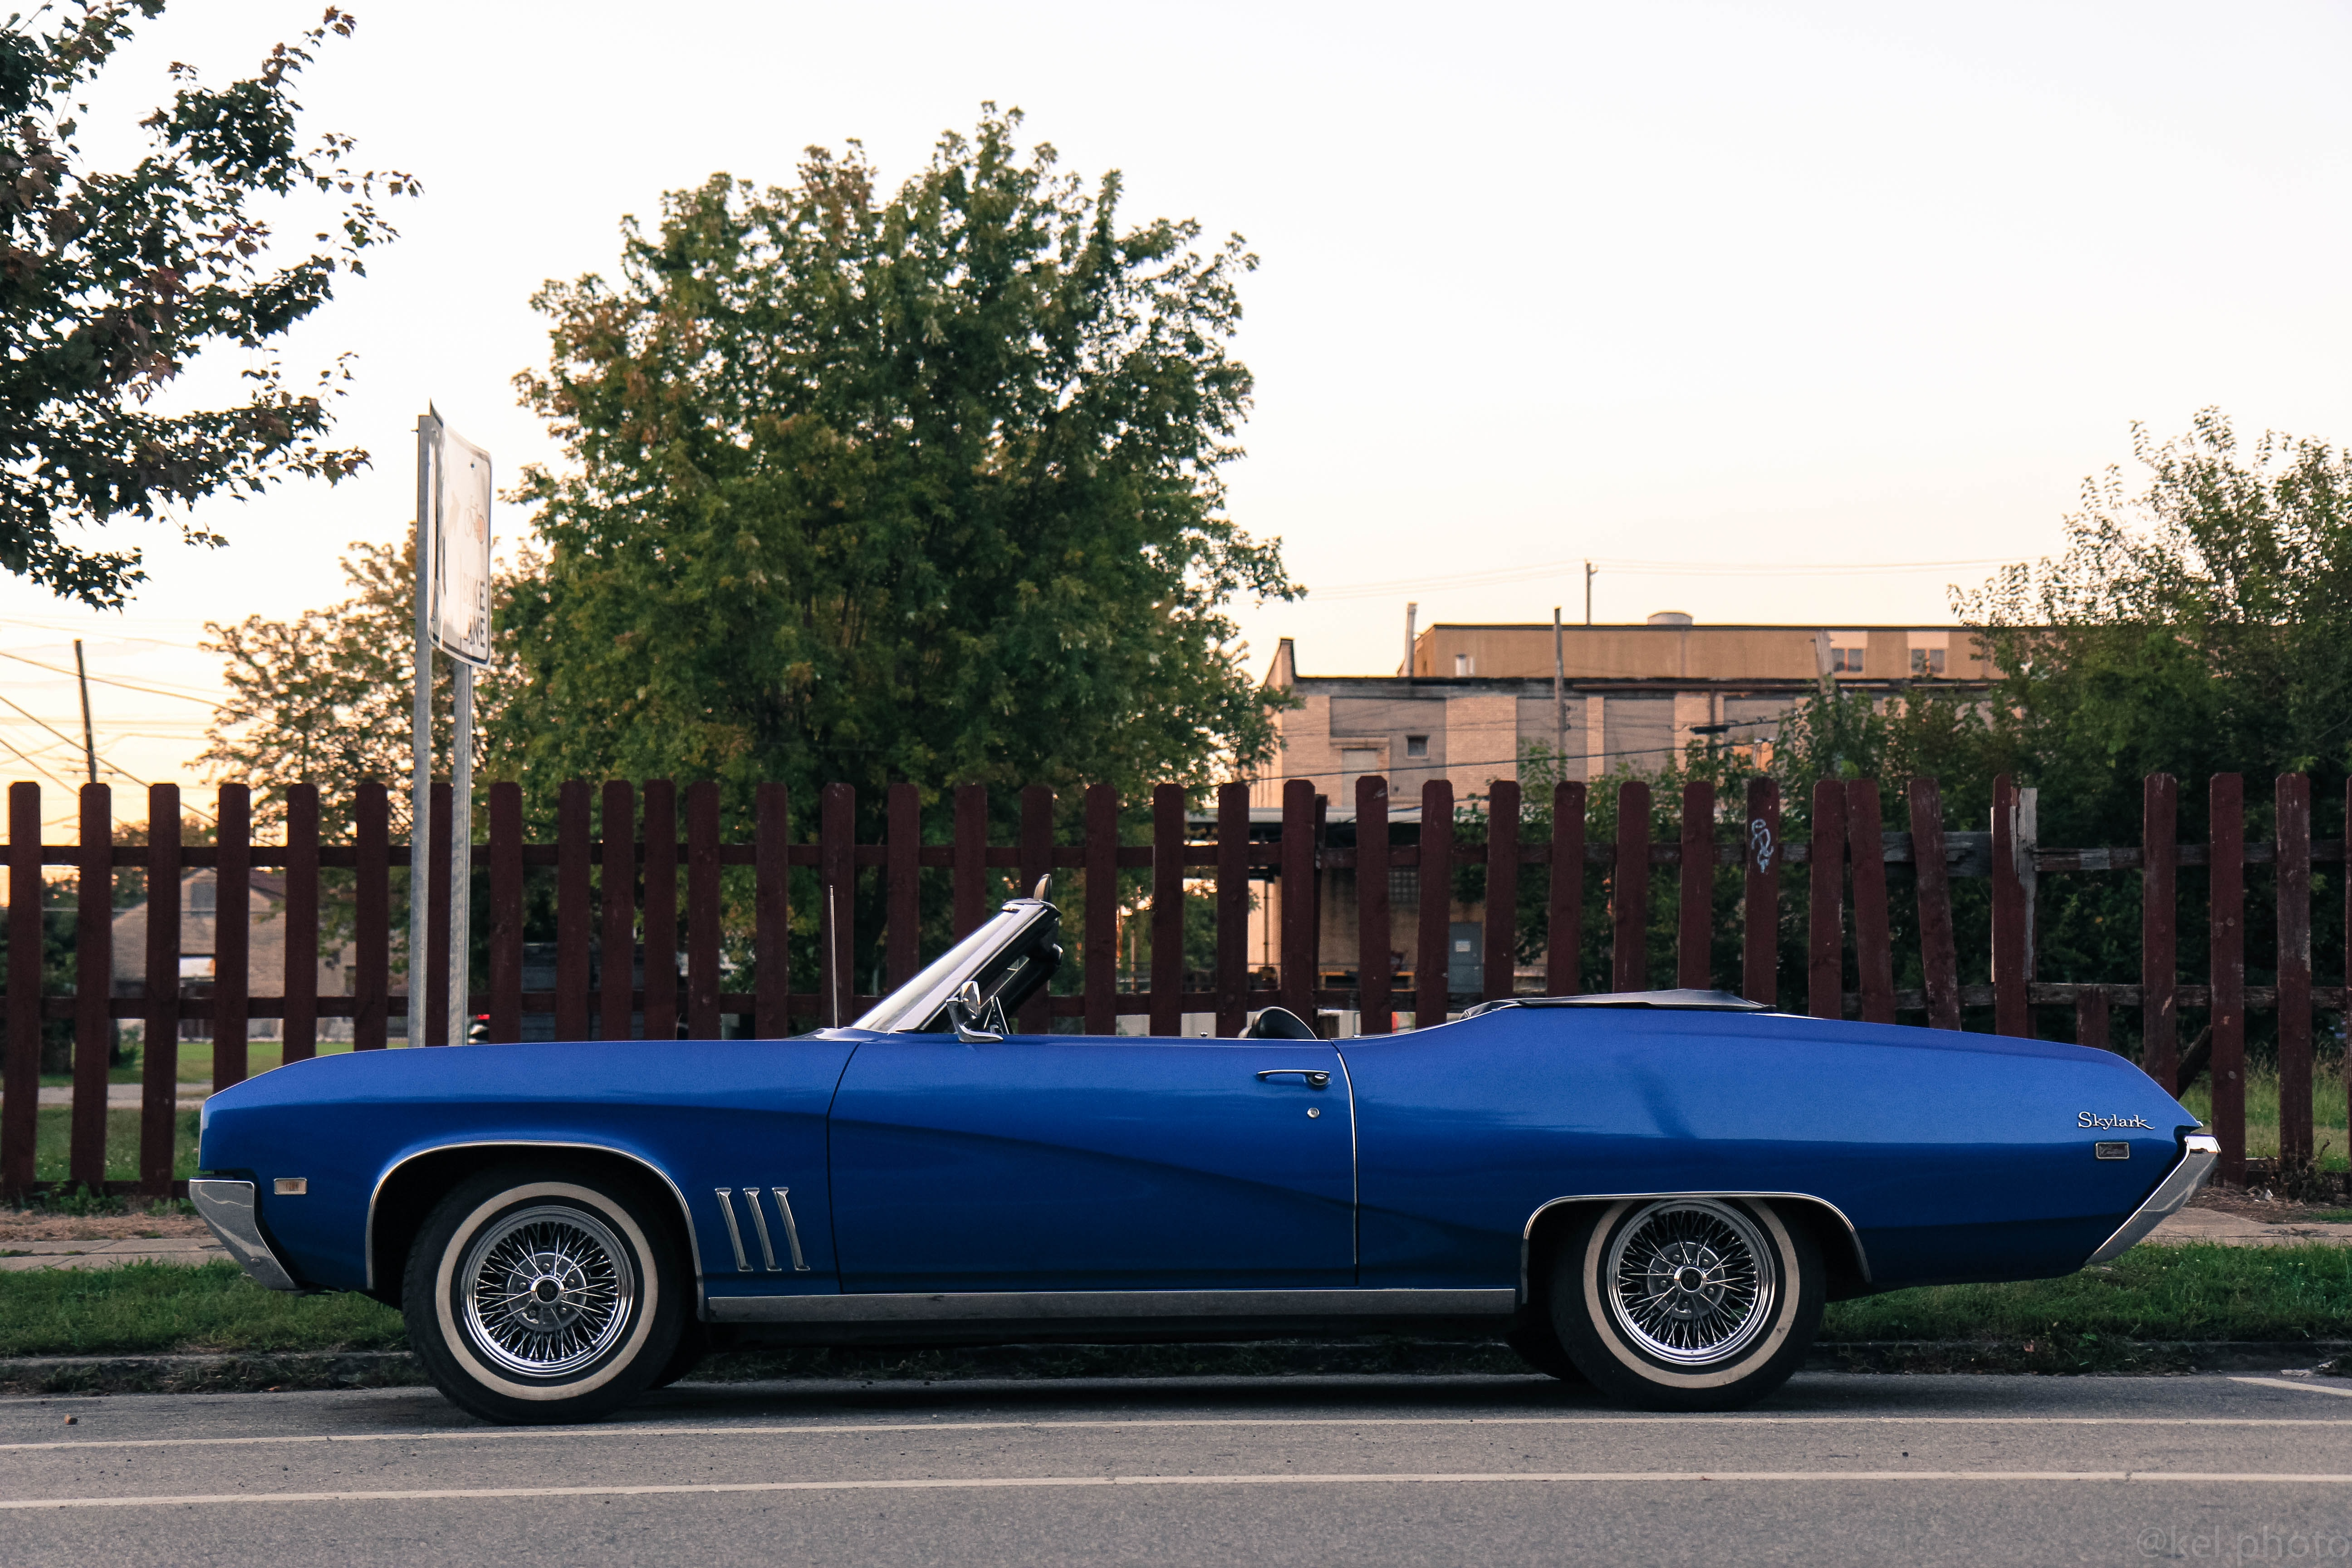 Blue convertible vehicle parked on pavement in front of brown picket fence, trees and building